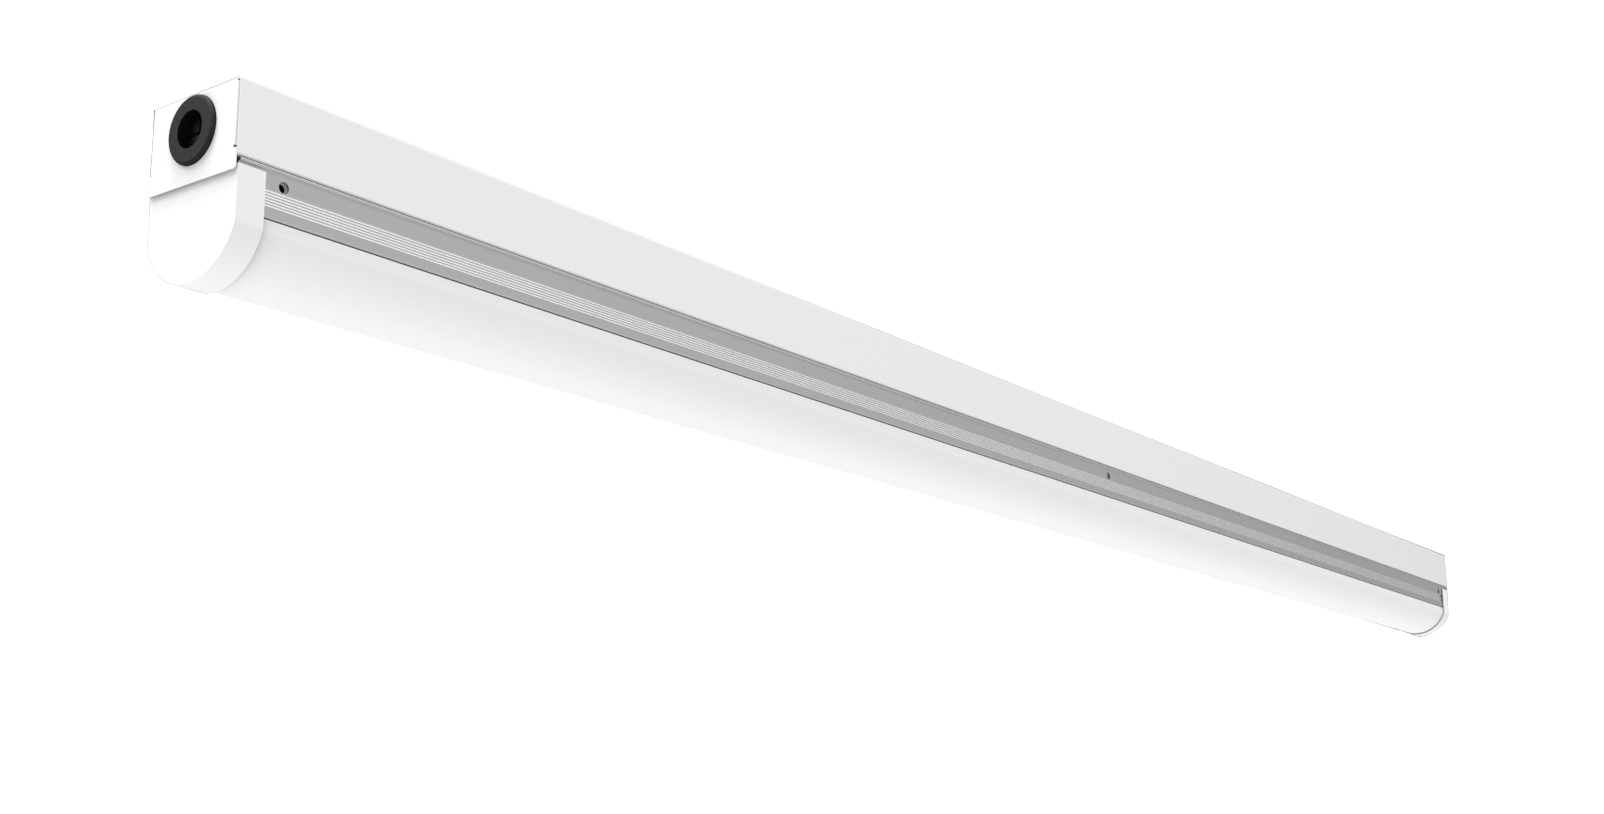 Luces Downlight Led Led Batten Light Led Batten Lights Batten Luminaire Batten